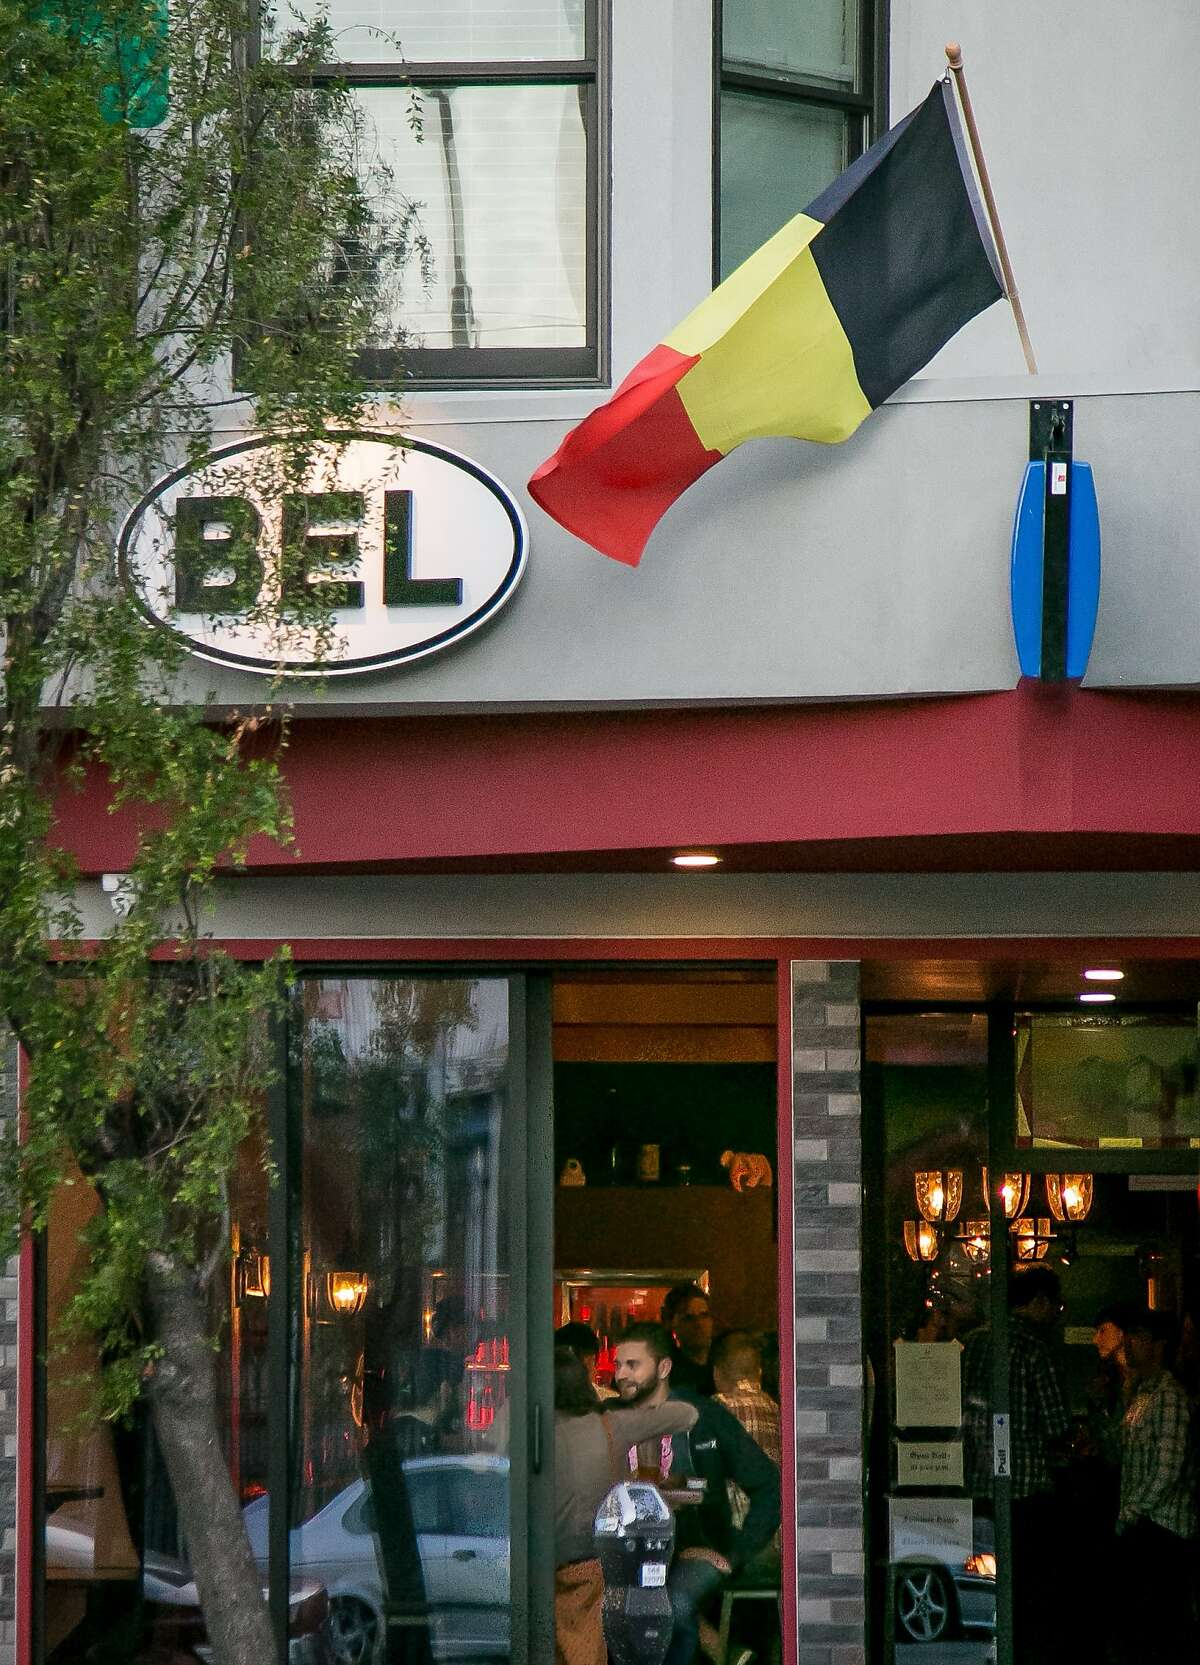 The exterior of Bel in San Francisco, Calif., is seen on August 11th, 2015.